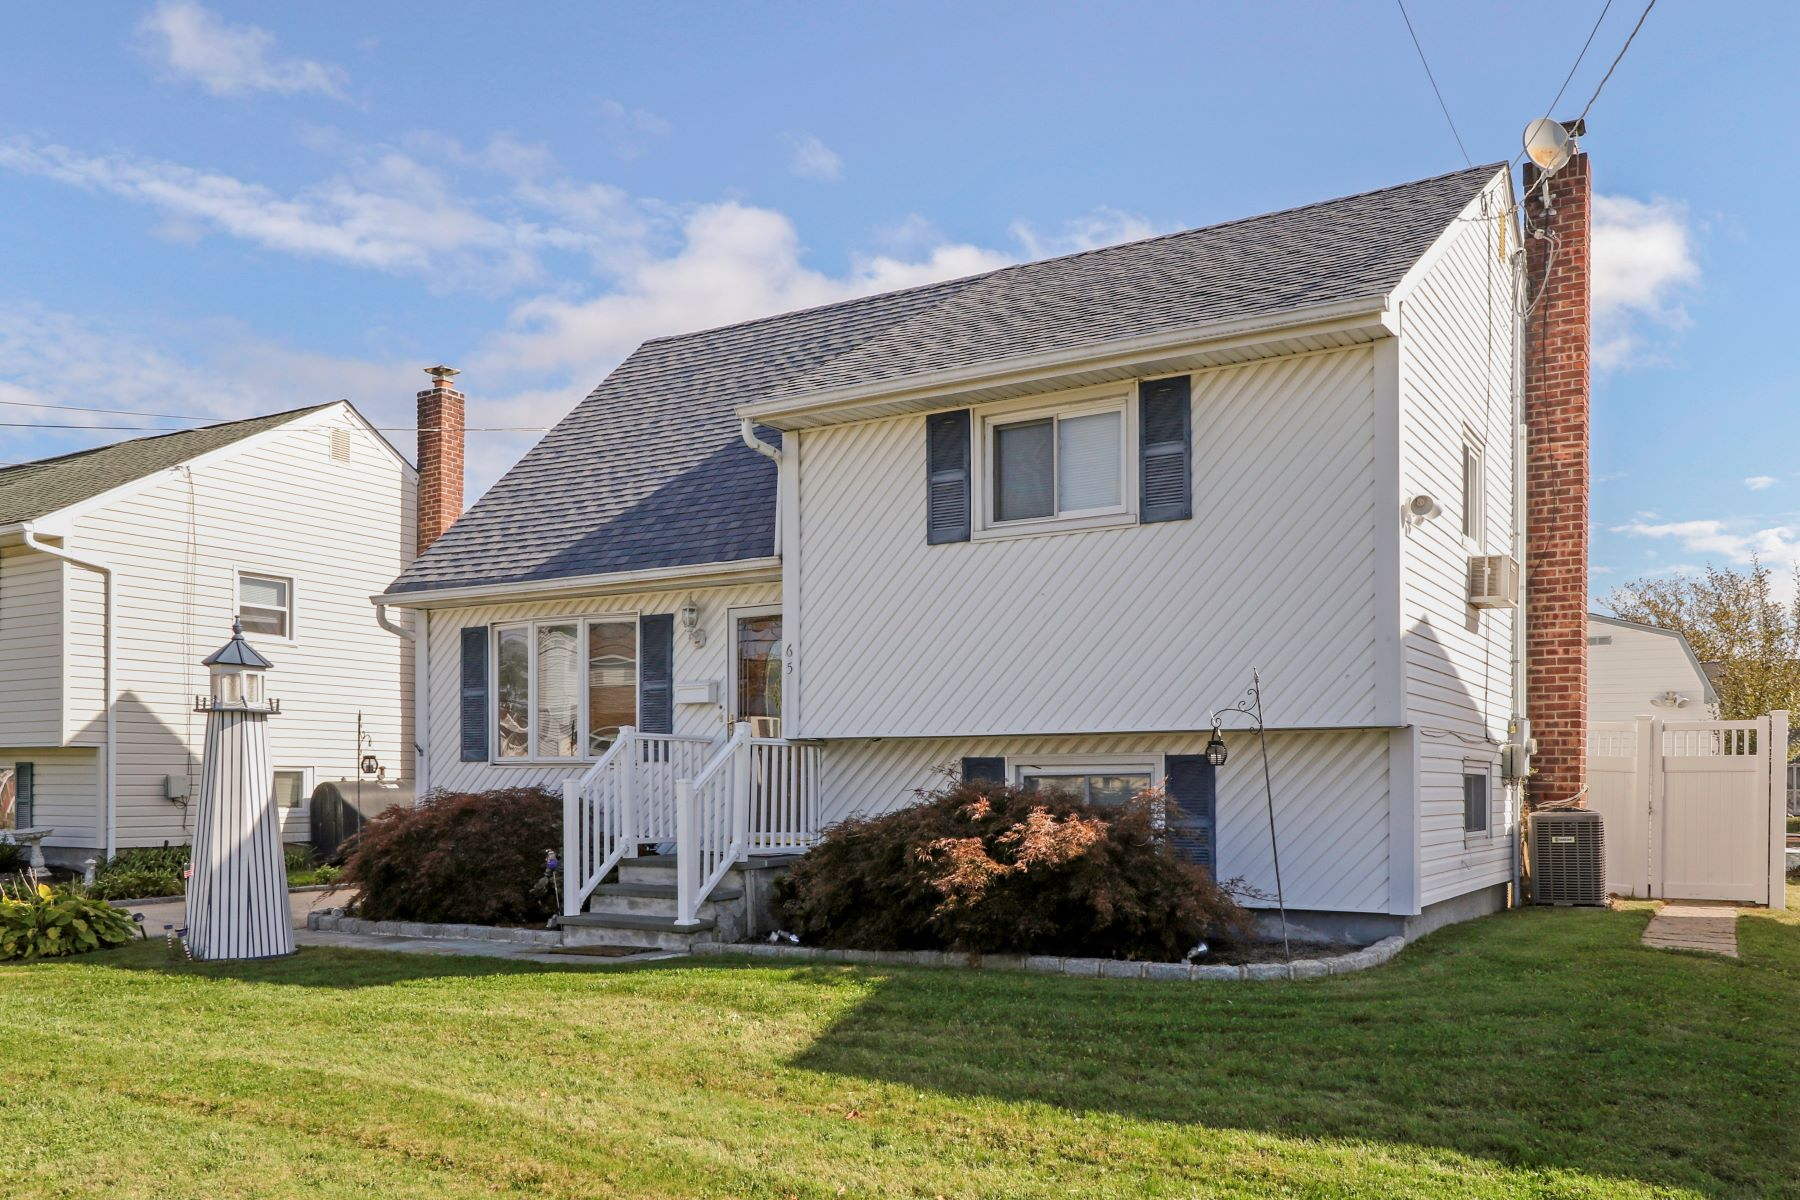 Single Family Home for Sale at 65 East Drive, Copiague, NY 11726 65 East Dr, Copiague, New York, 11726 United States